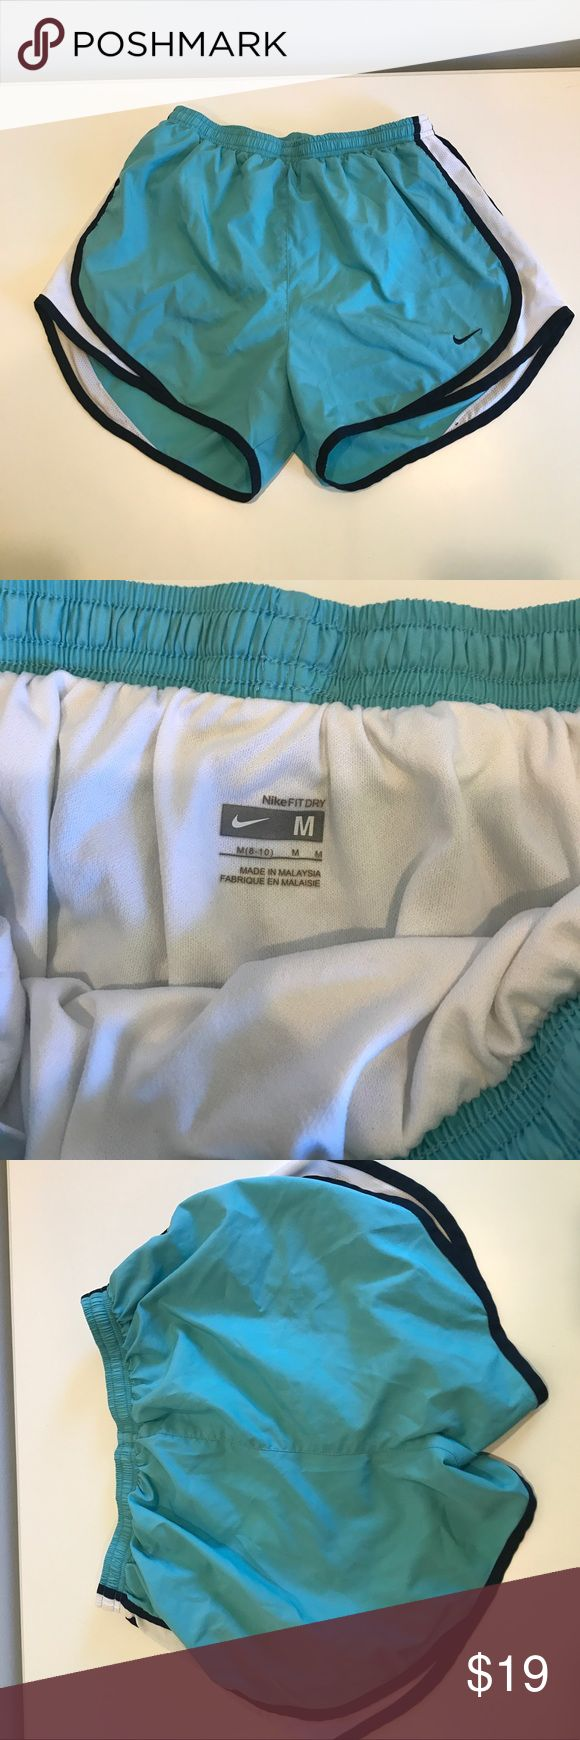 Nike tempo shorts Nike tempo shorts. Like new. Almost perfect condition. Nike Shorts